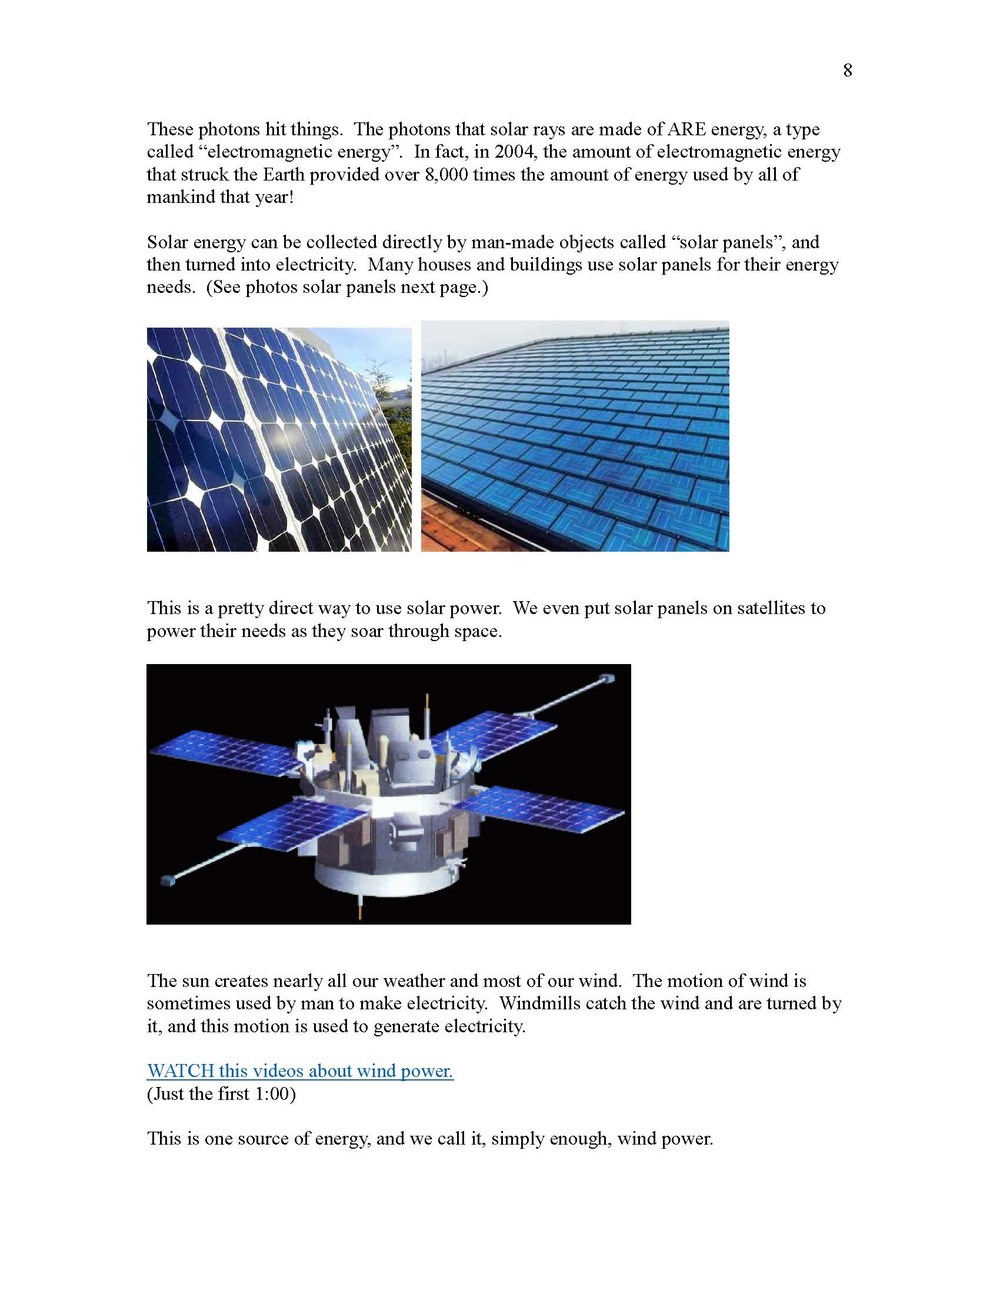 Step 3-4 Current Events - Energy Concerns_Page_09.jpg